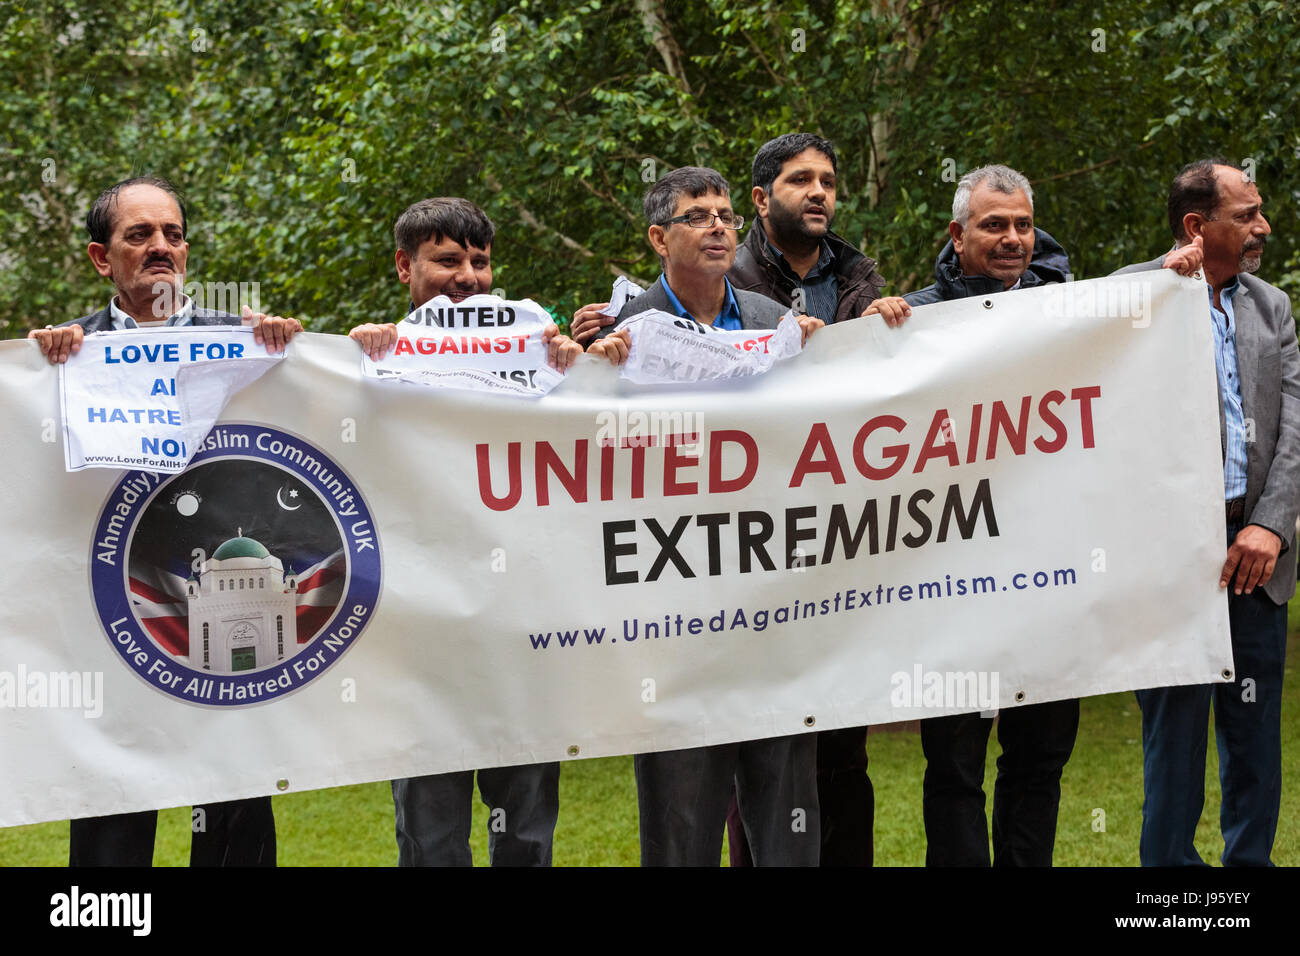 London, 5th June 2017. Representatives from the Muslim community, including many clerics, show their respect and - Stock Image